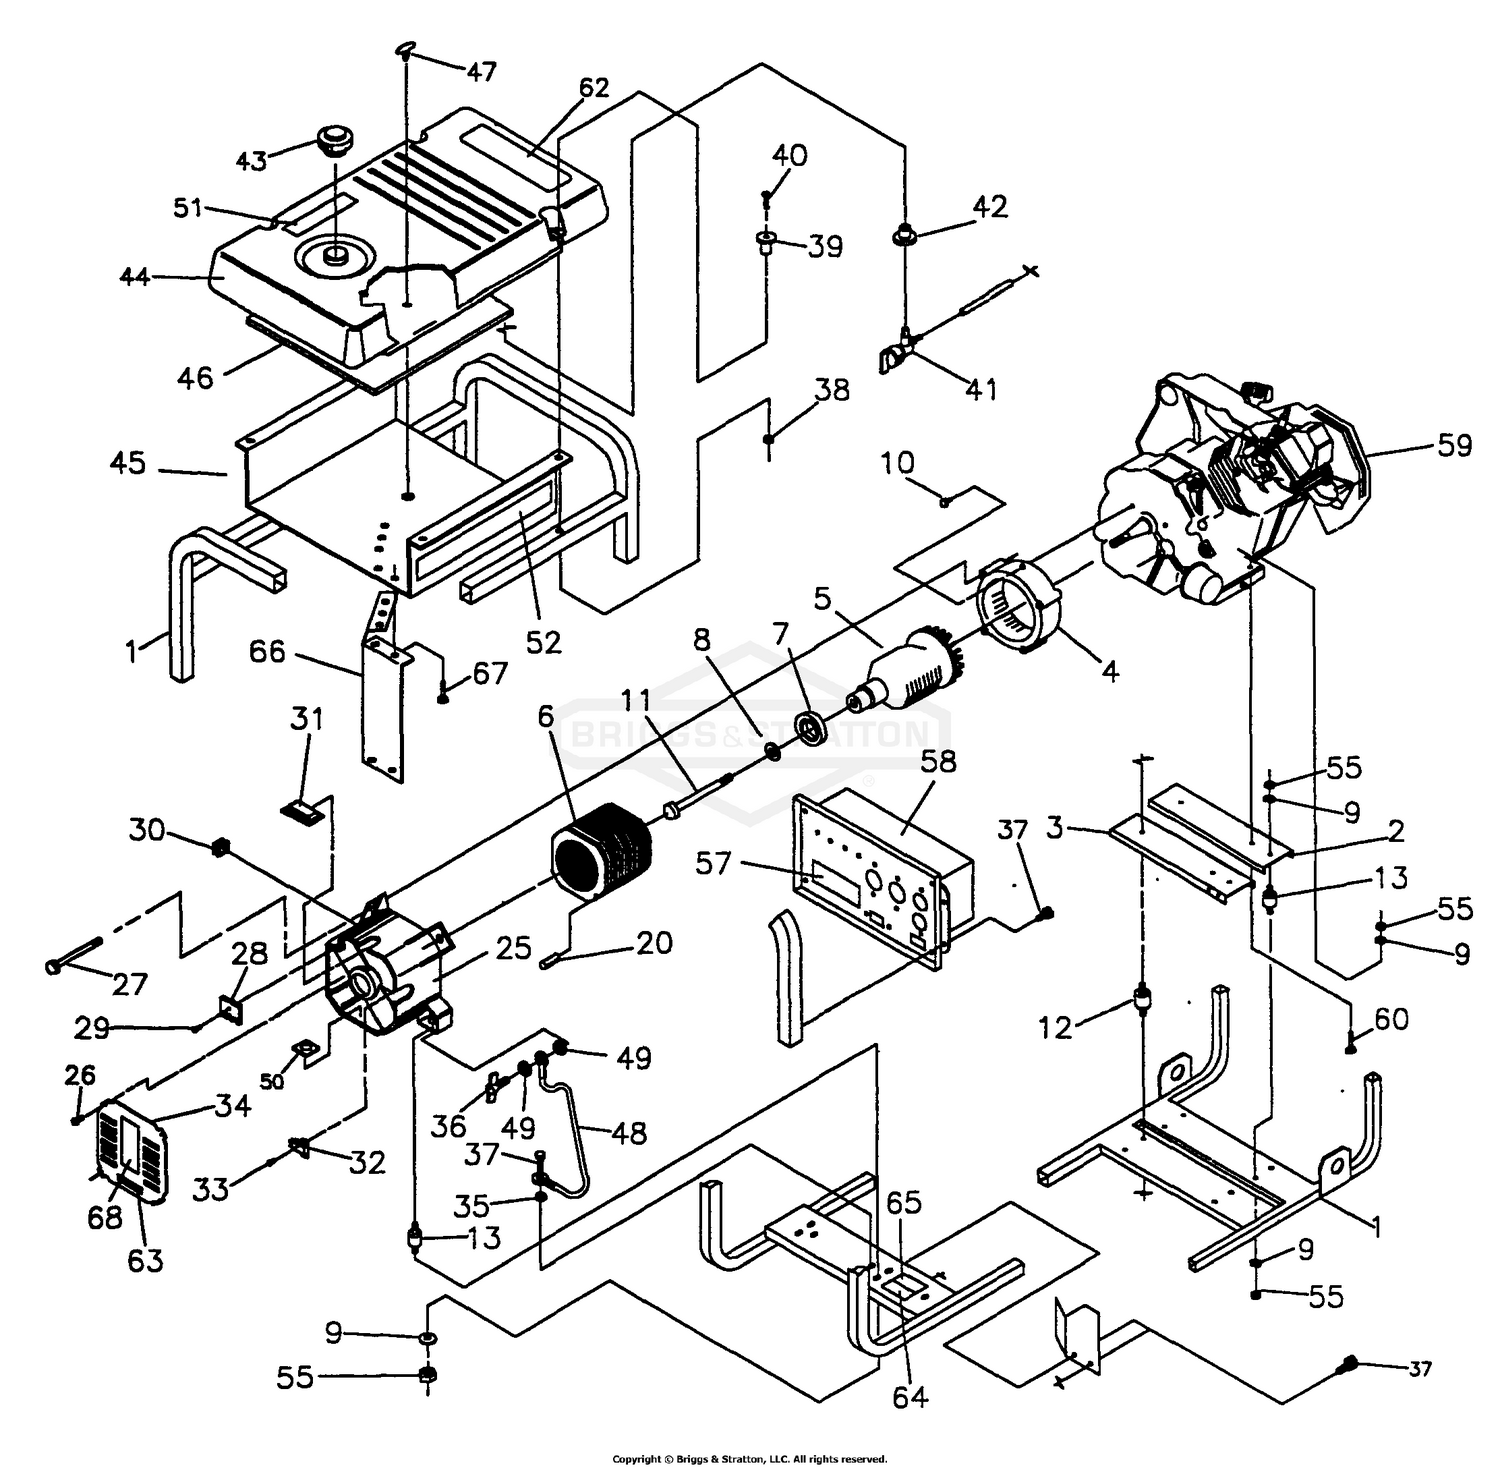 65795gs Rectifier Wiring Diagram Library 4 Wire Regulator For Scooter Briggs Amp Stratton Power Products Del 26072017021729 9885 2 Generator